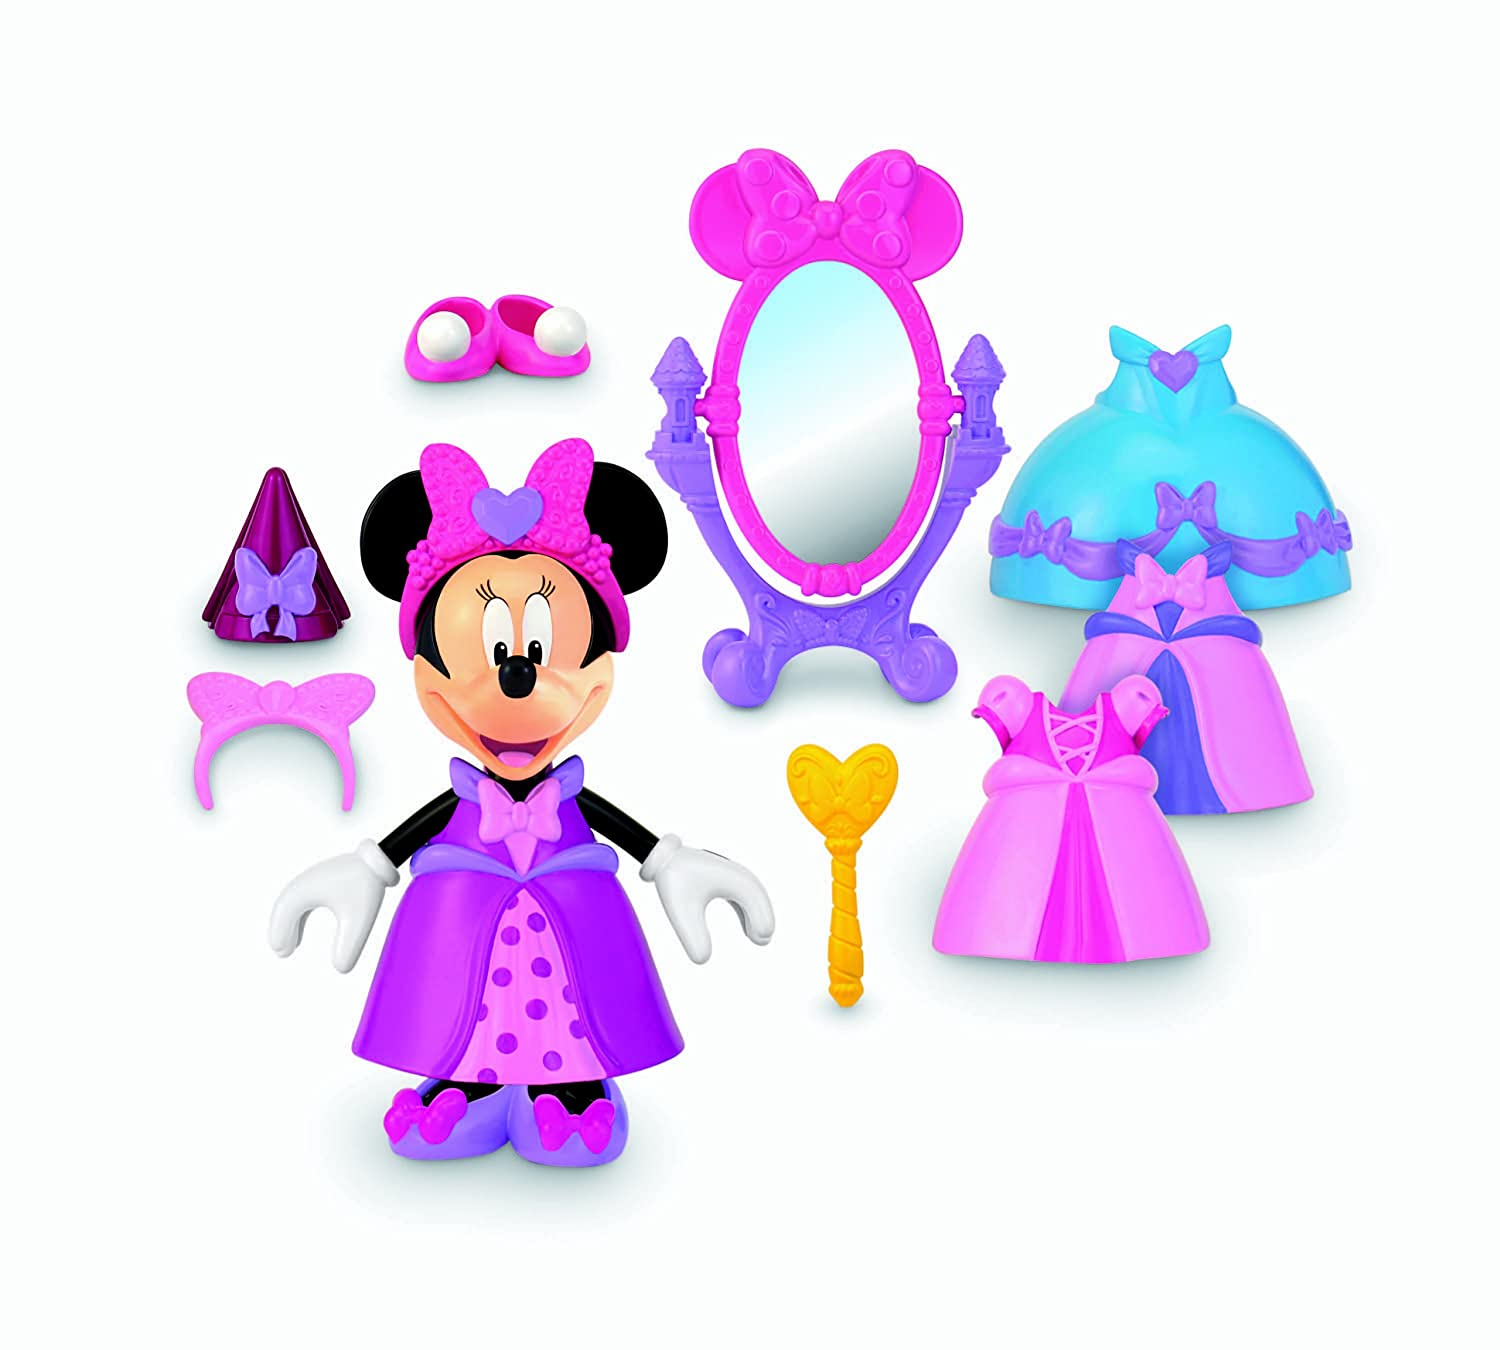 Fisher Price Disney S Princess Bowtique Minnie Mouse New Princess Minnie Mouse